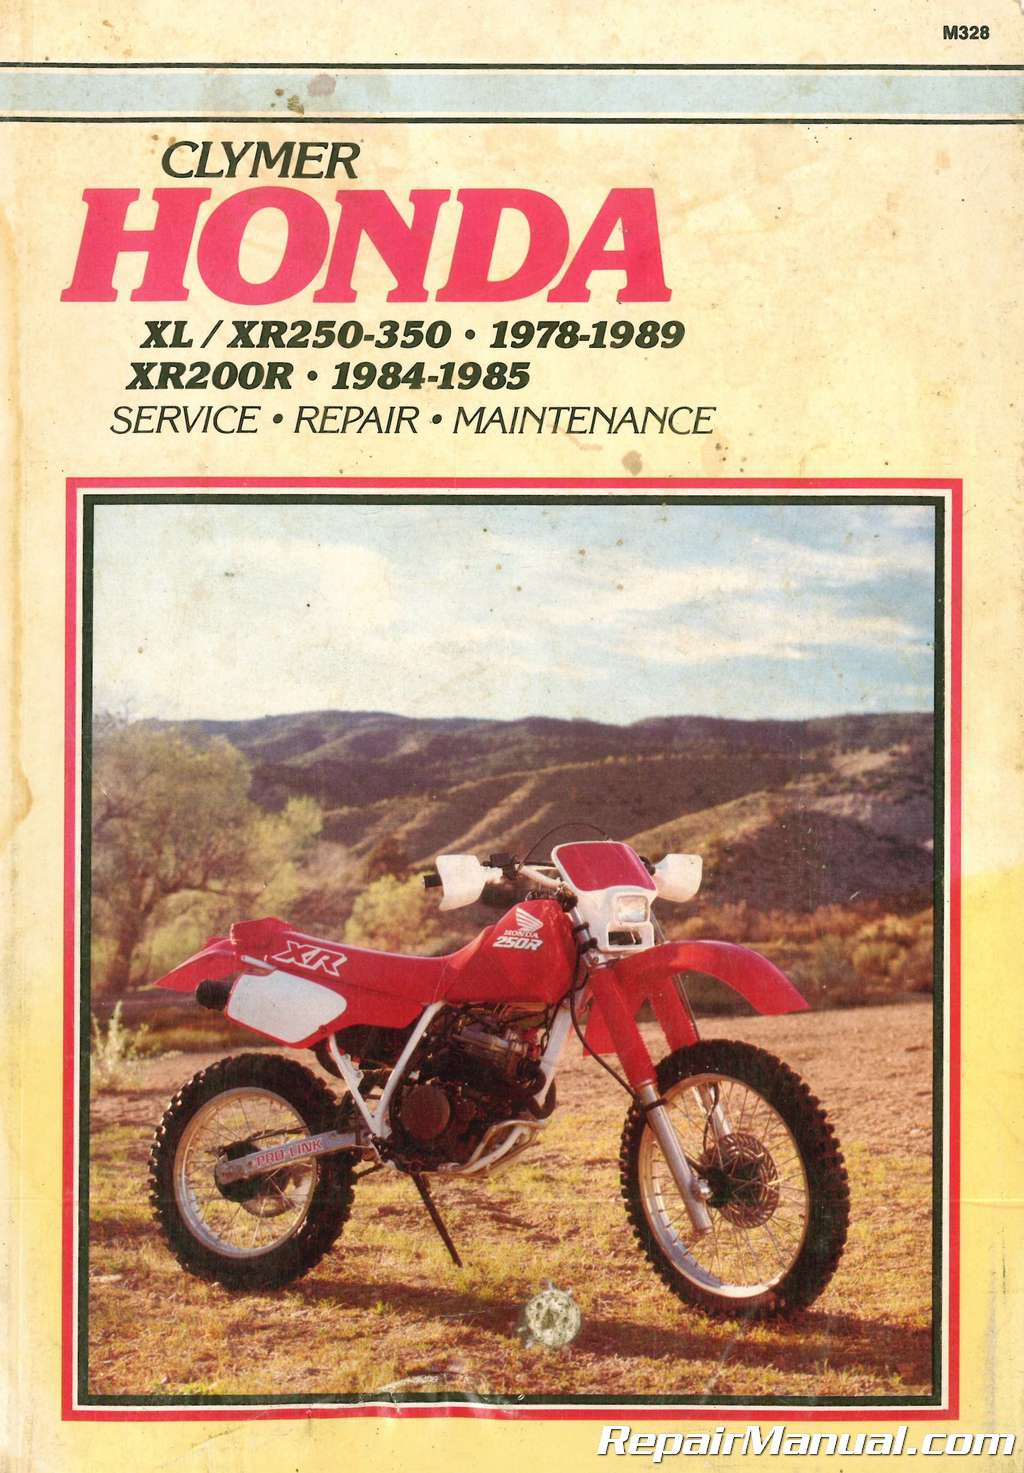 hight resolution of xr350r wiring diagram wiring diagrampin diagram of honda motorcycle parts 1985 xr350r a cylinder onused clymer